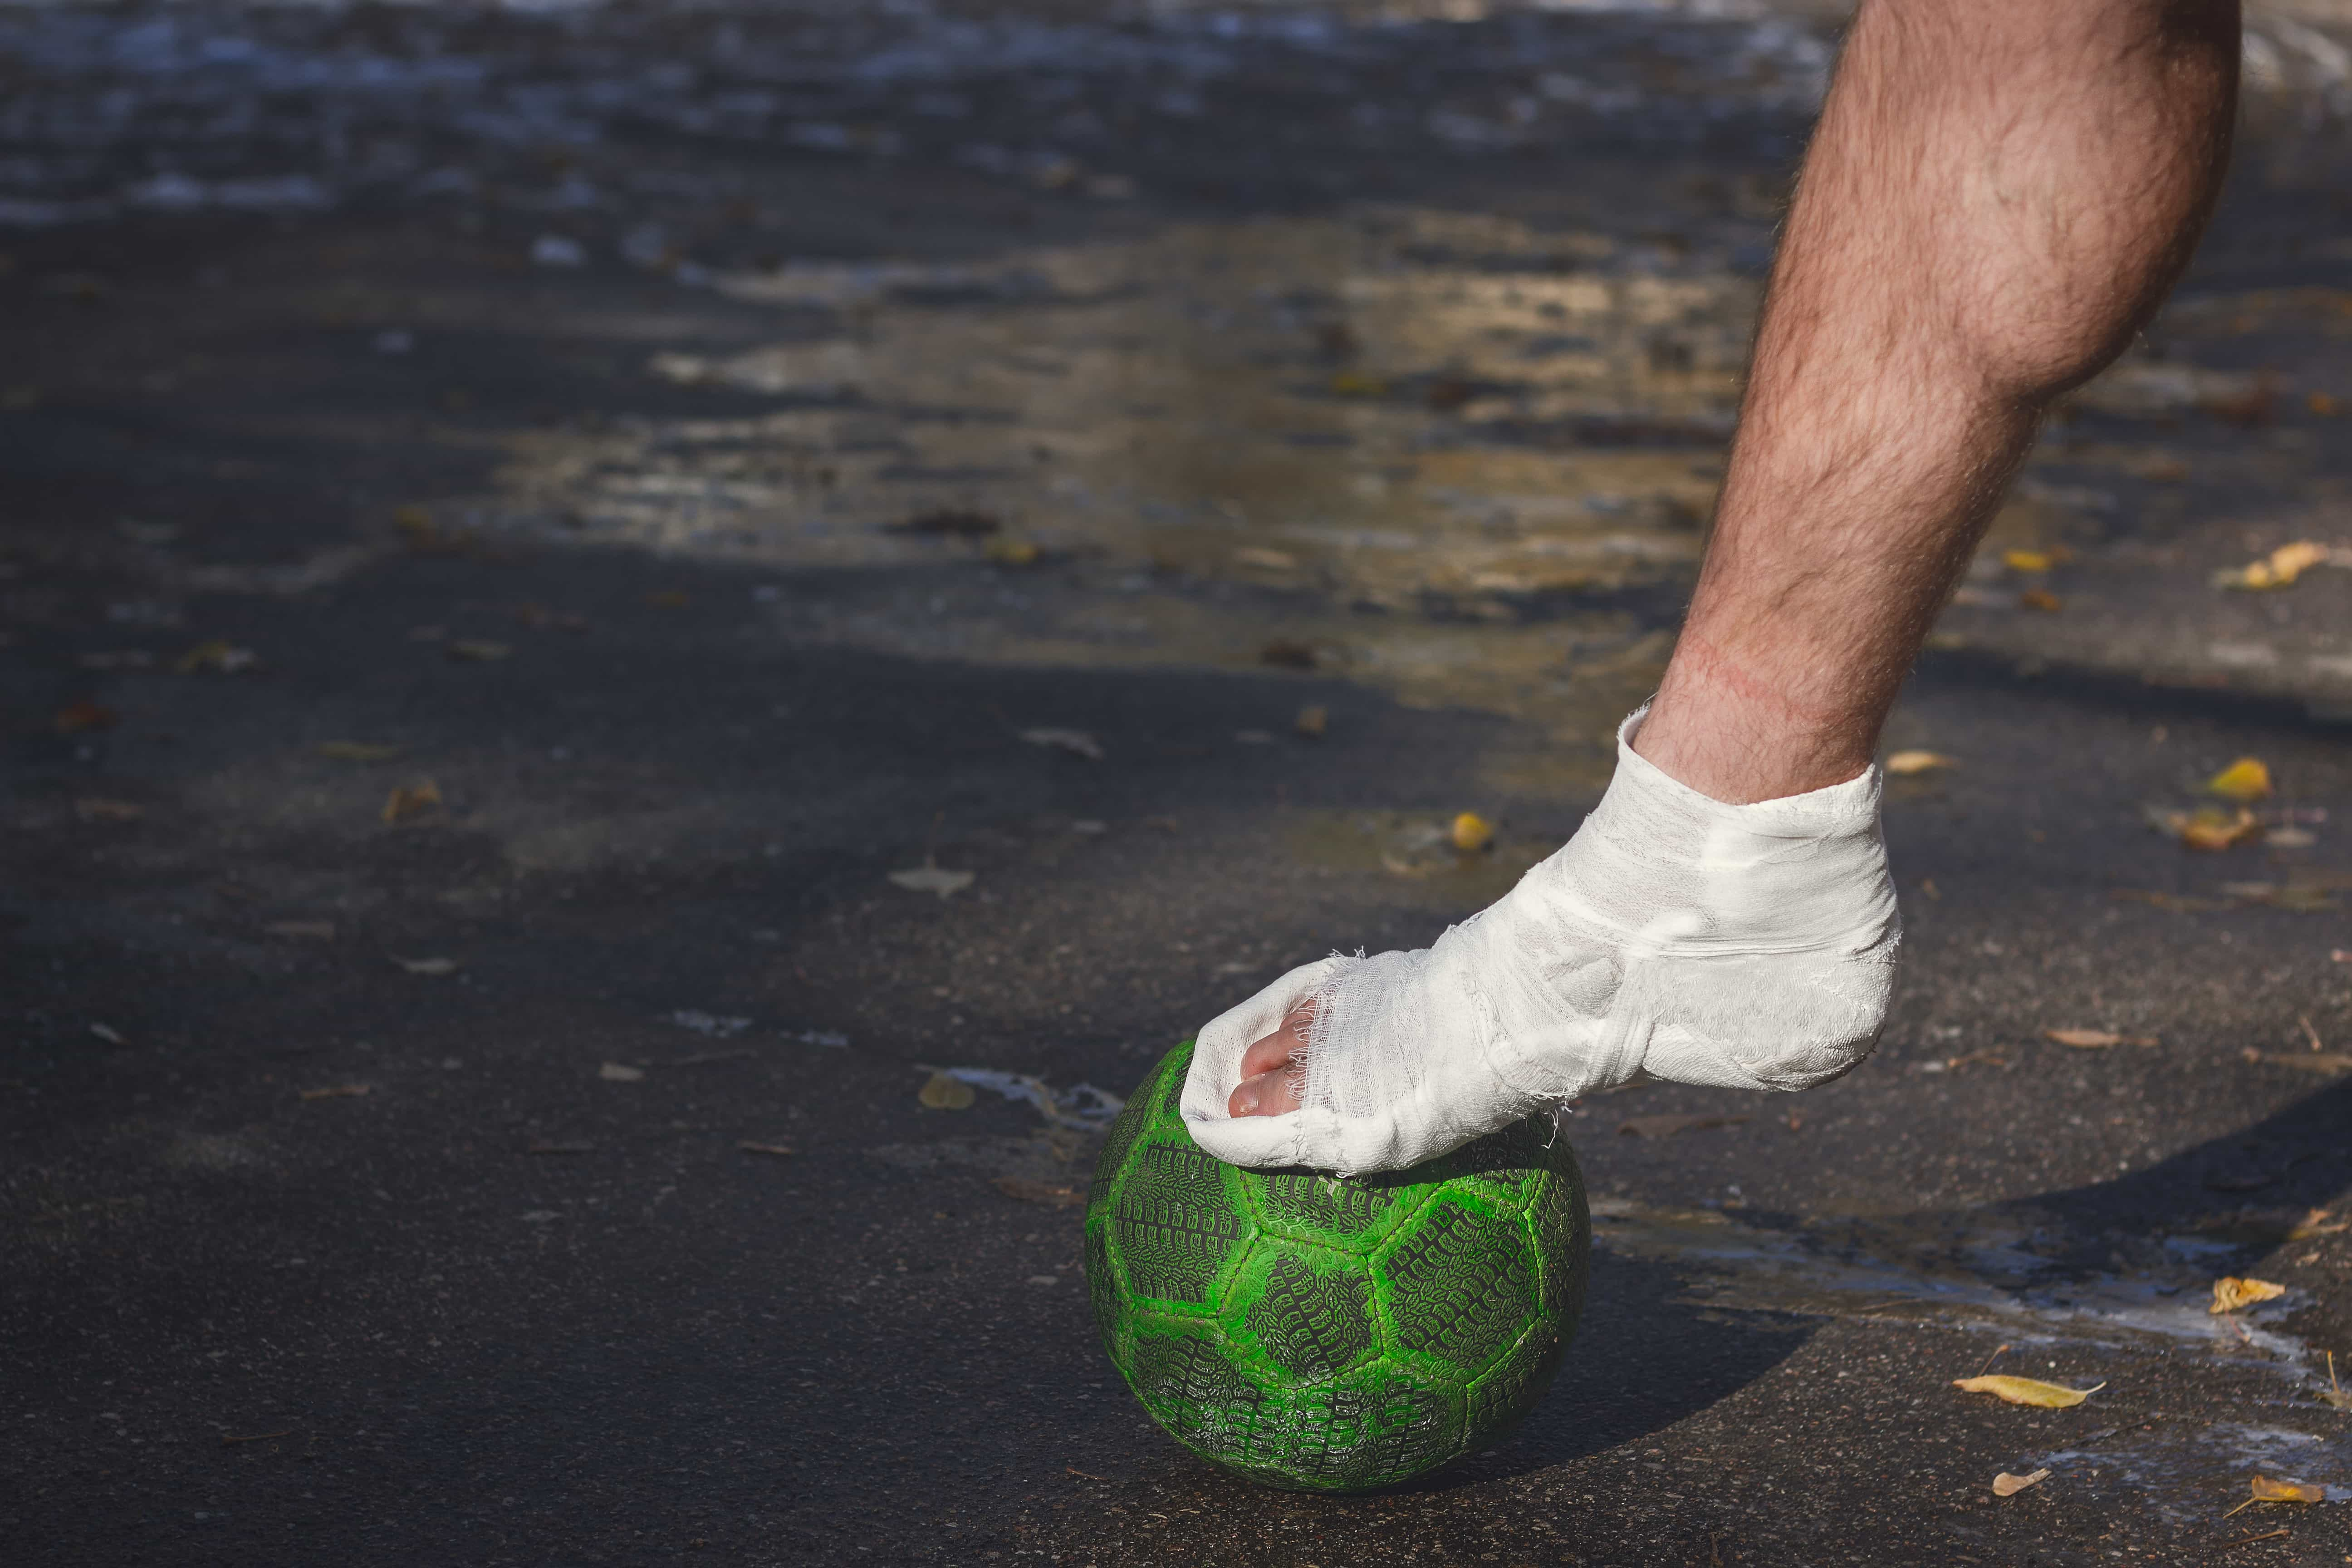 Injured player with a primitive football